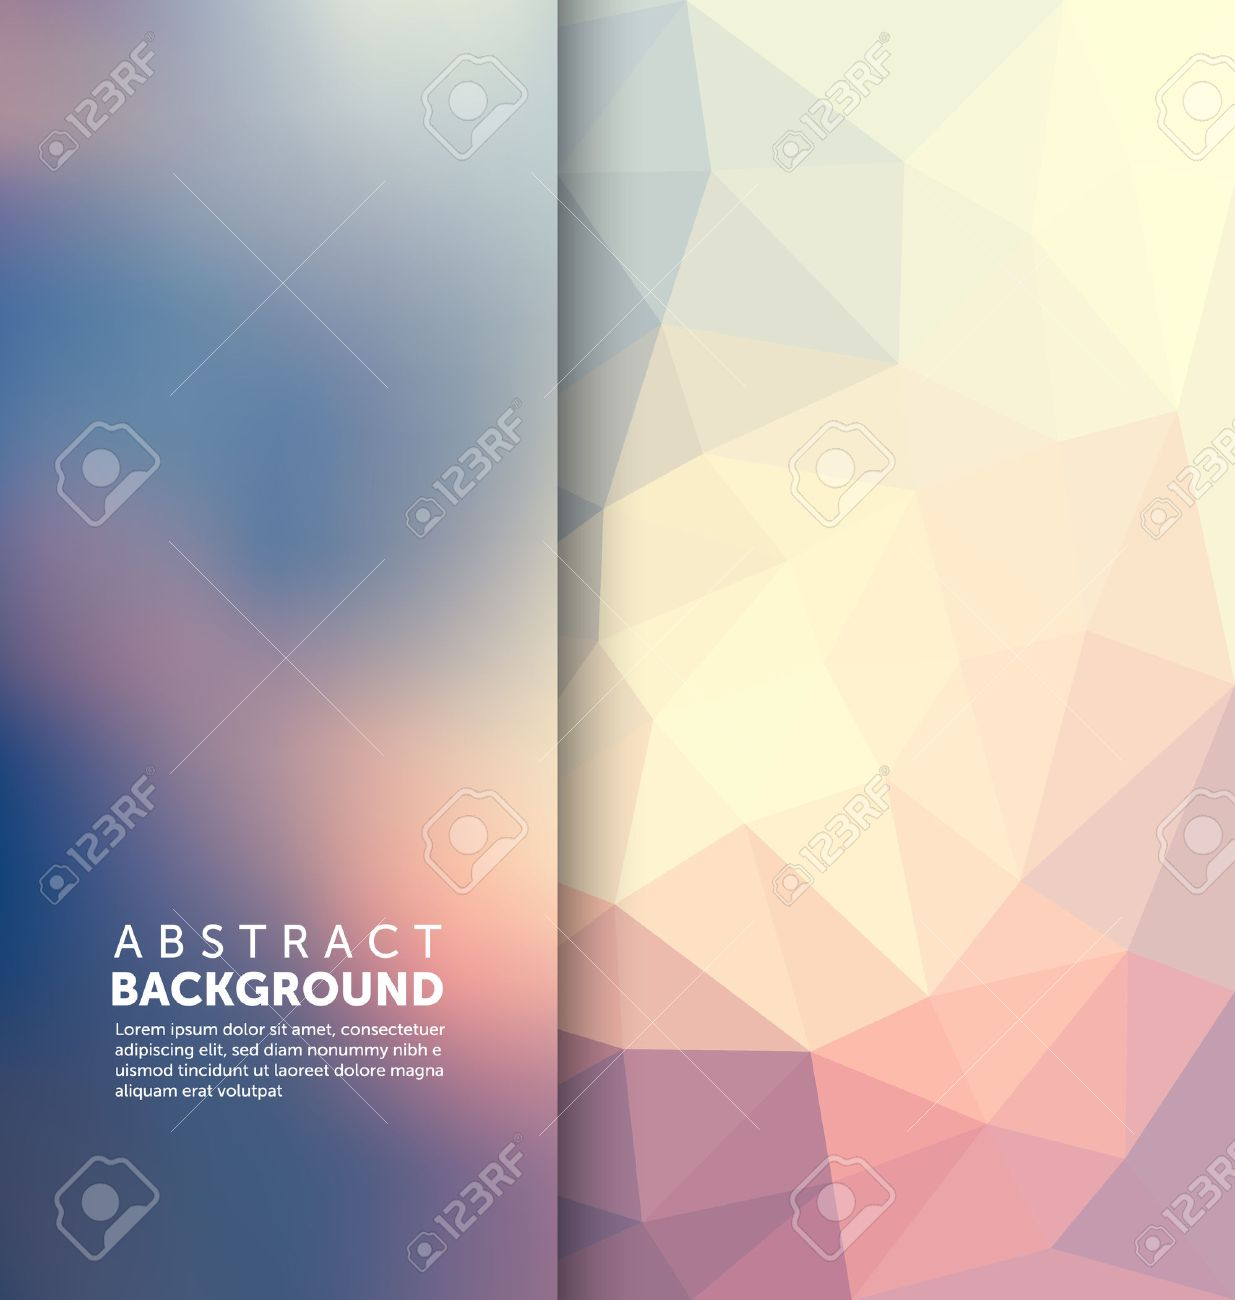 Abstract Background - Triangle and blurred banner design - 45168488